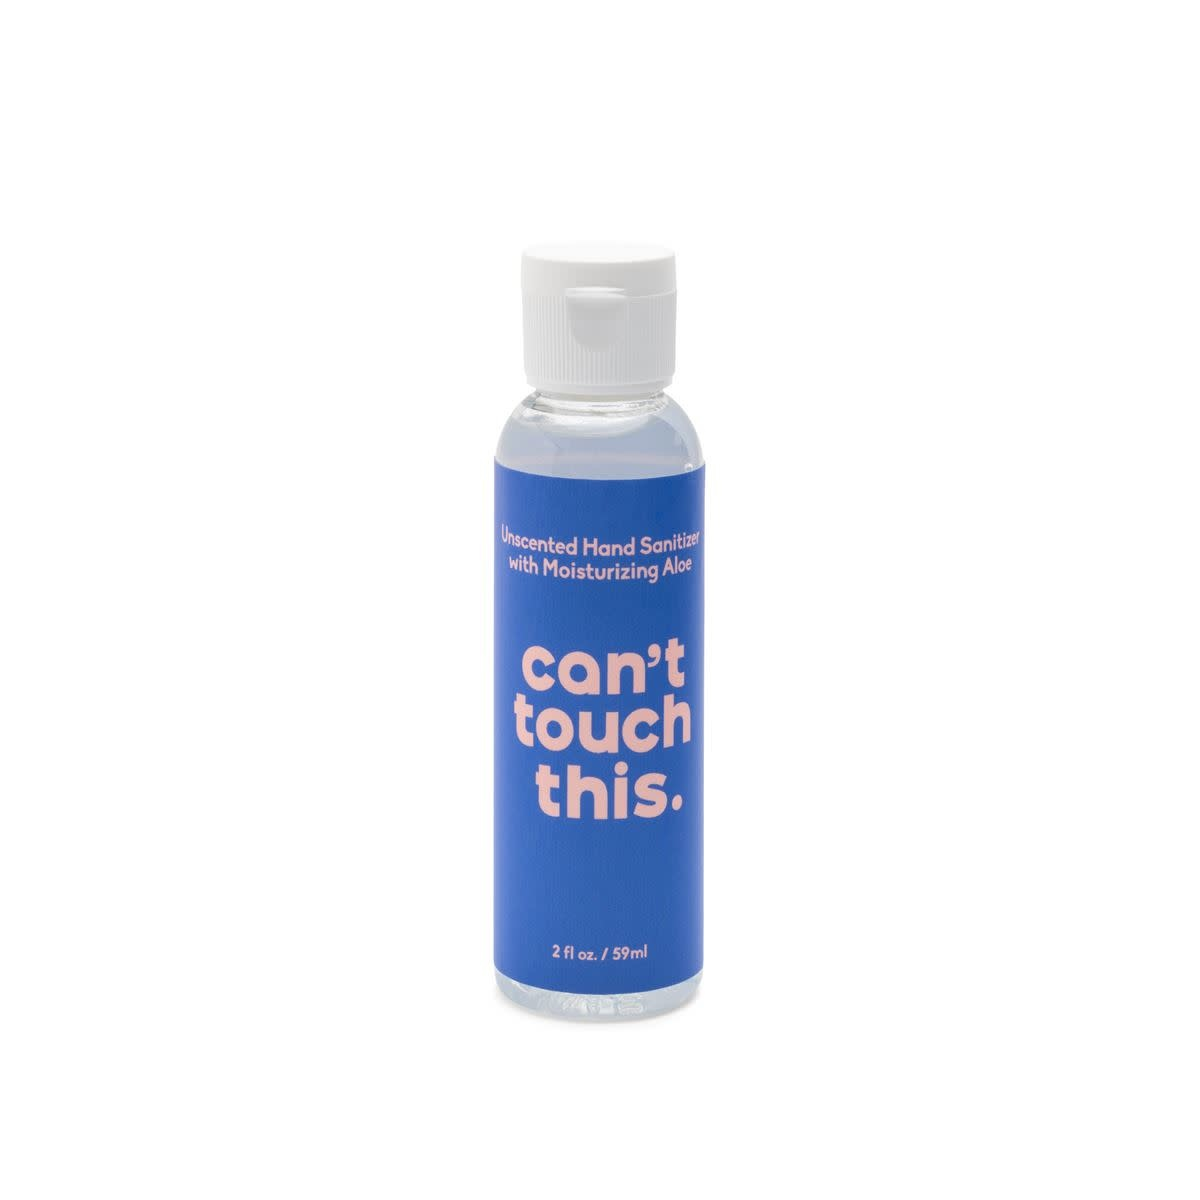 Paddywax - PA PA AP - Can't Touch This (purple) Hand Sanitizer